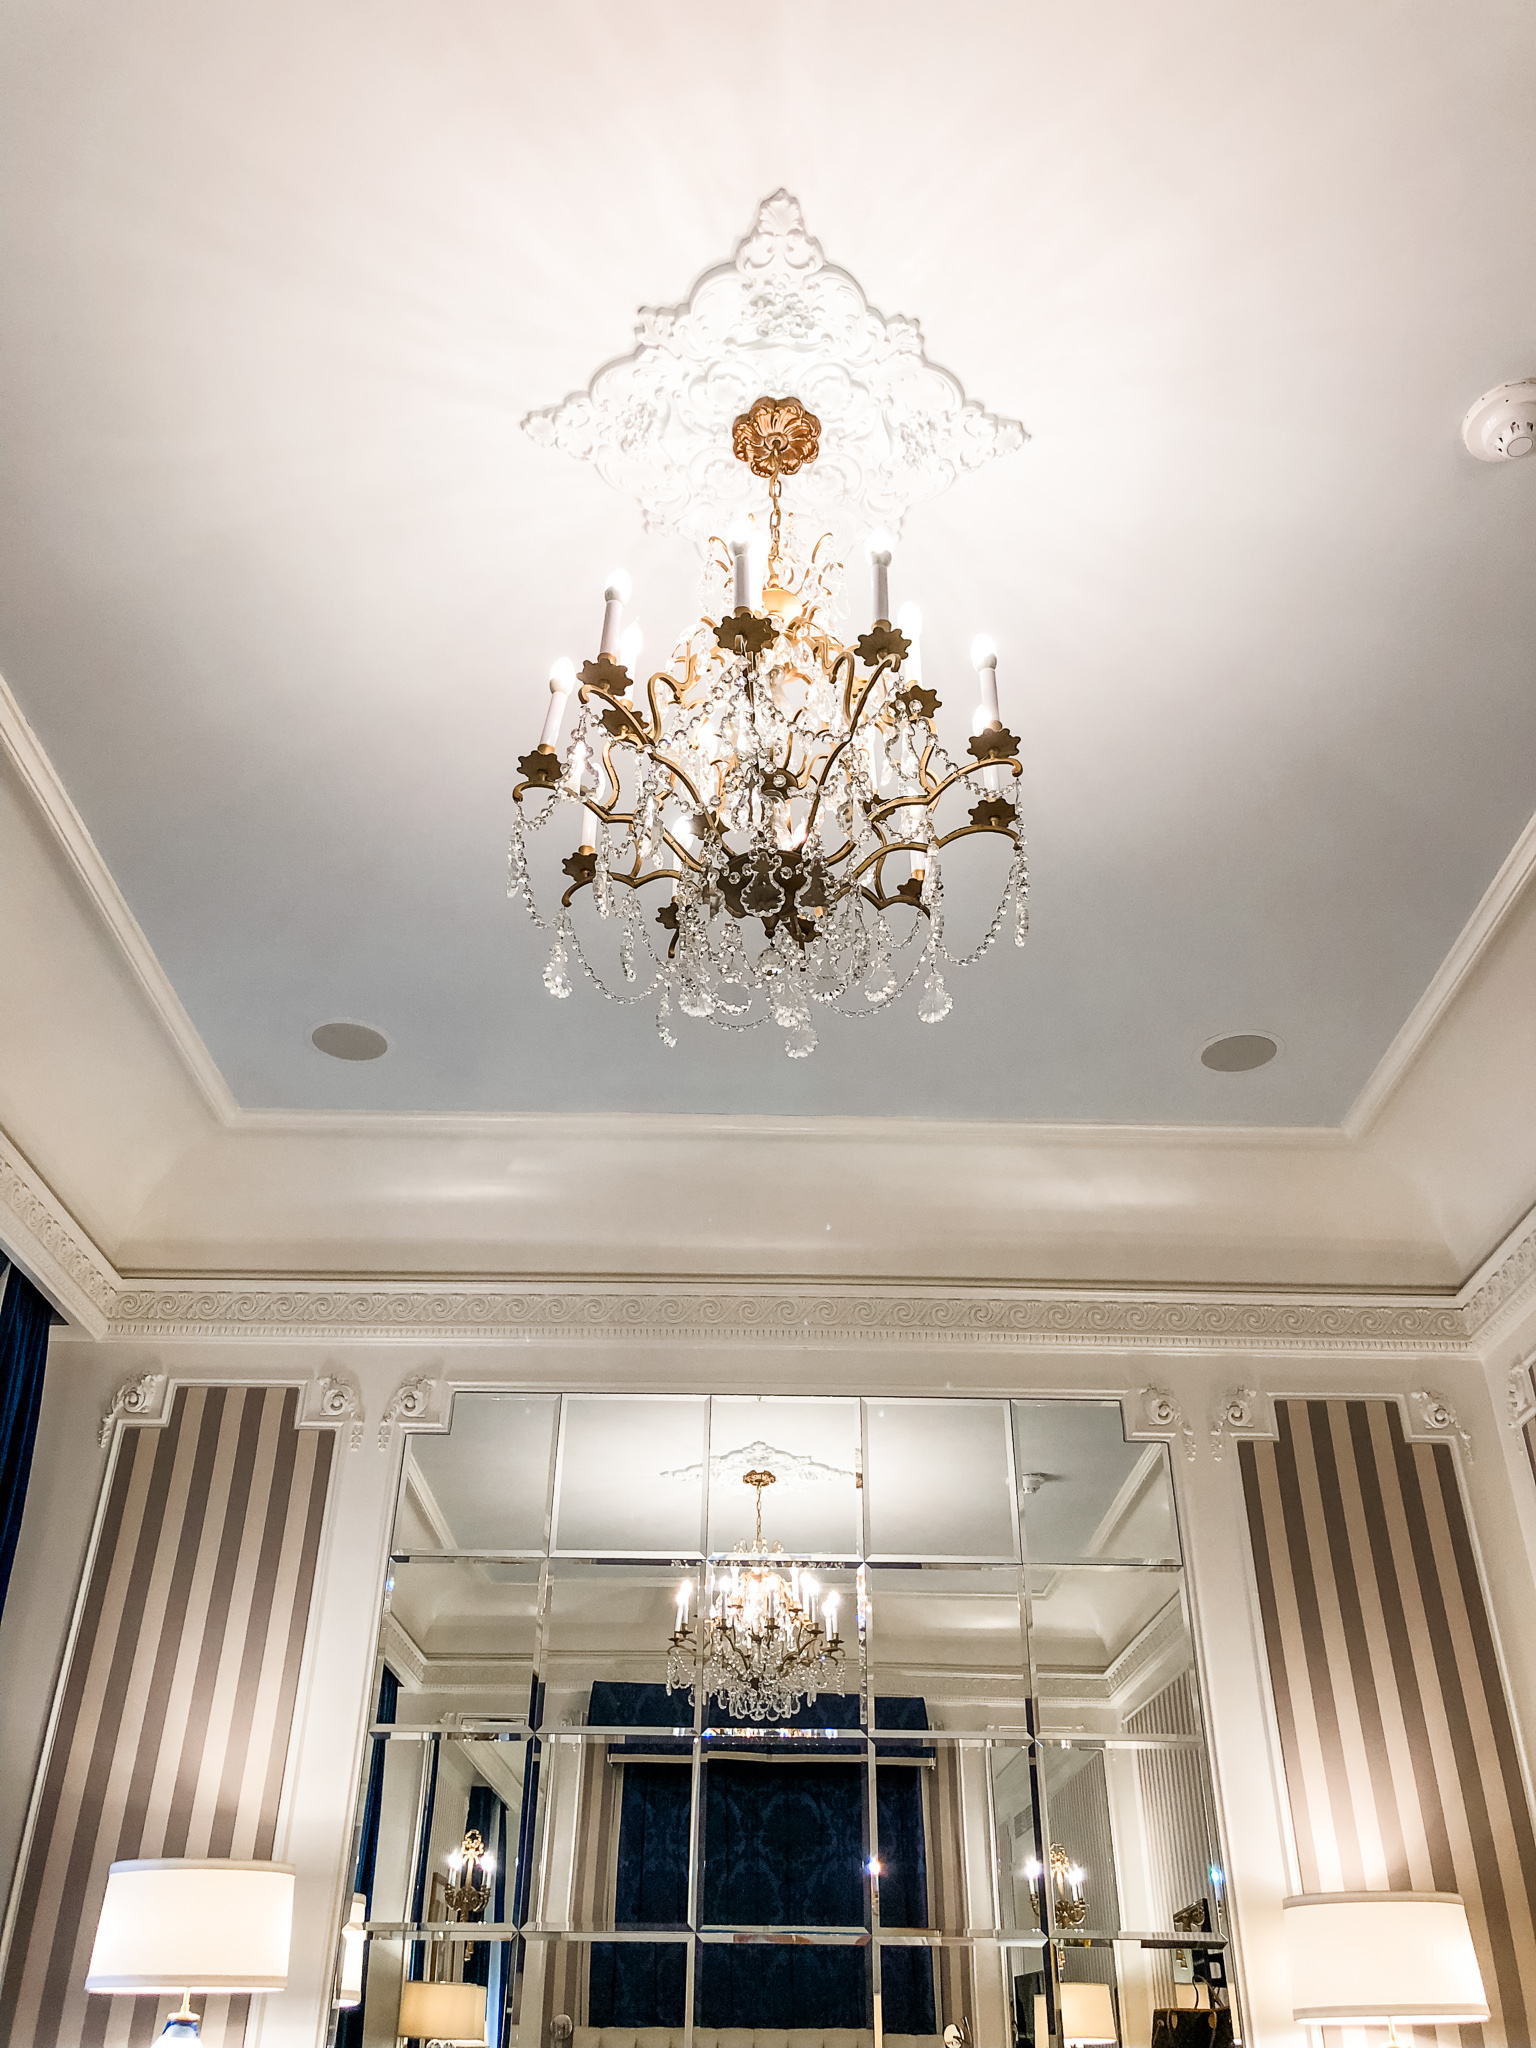 12 foot ceilings and a gorgeous (and spotless!) chandelier